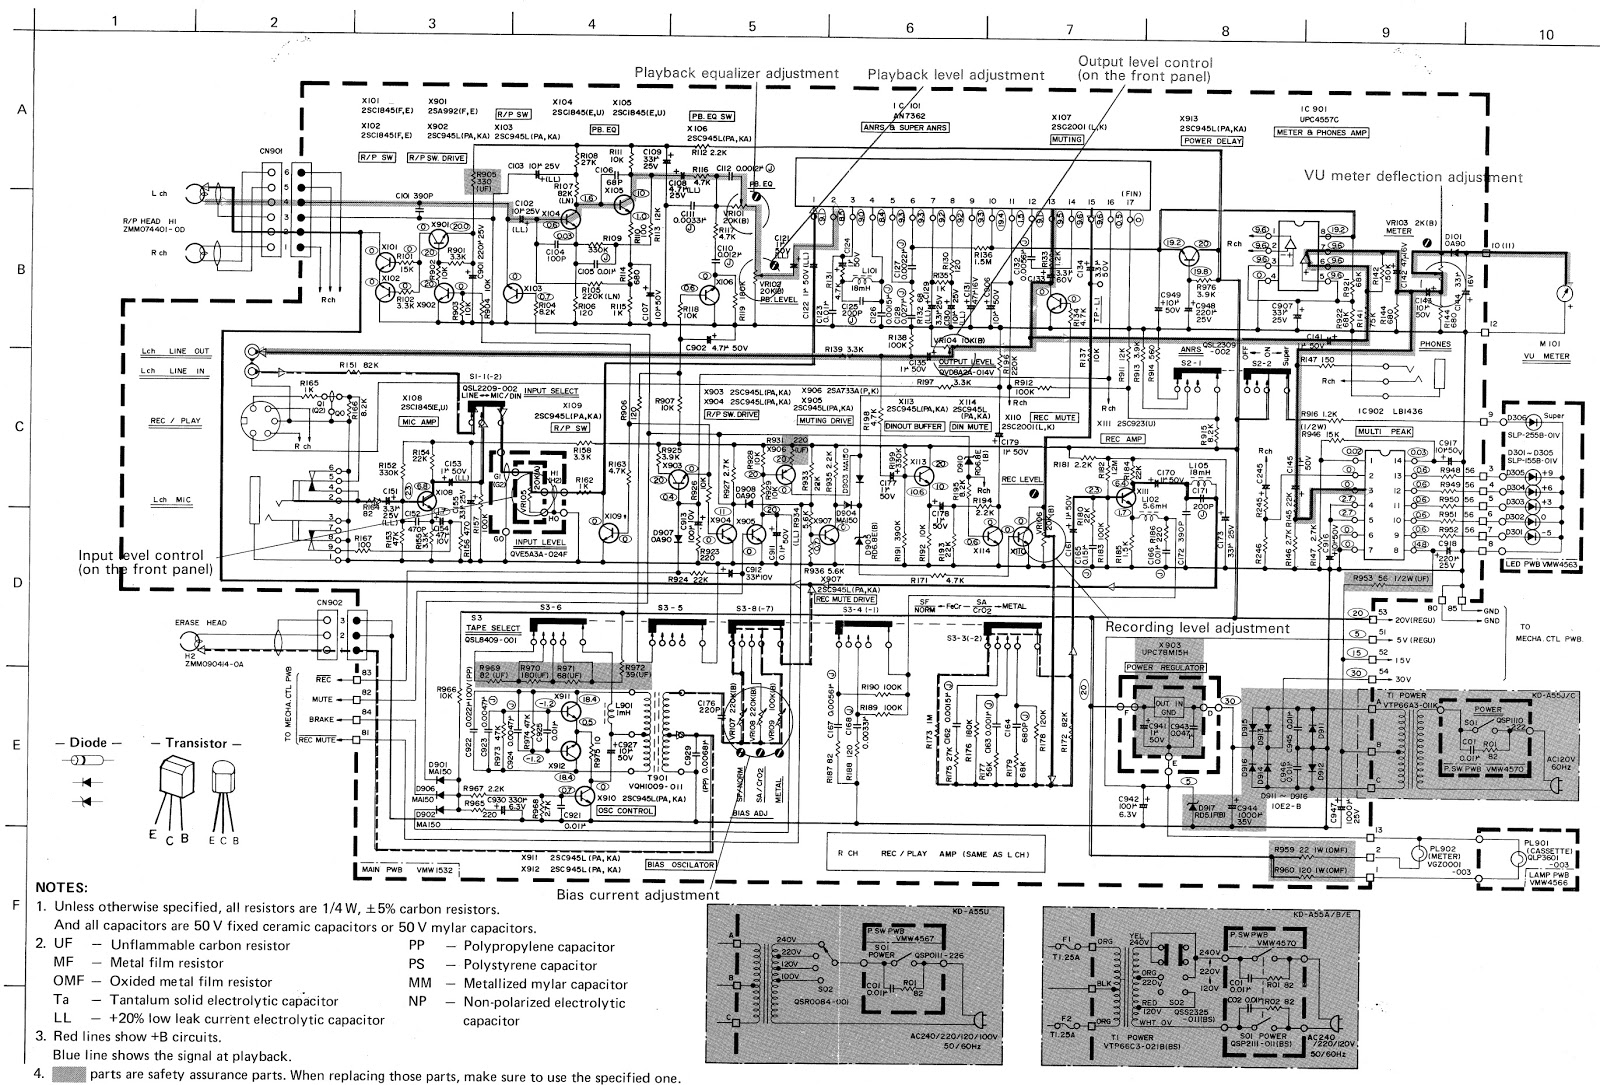 17pw15 8 Circuit Diagram Free Download Wiring Electro Help 05 16 Additionally Ac Moreover Jvc Kd A55 Gradient Cd6500 Tape